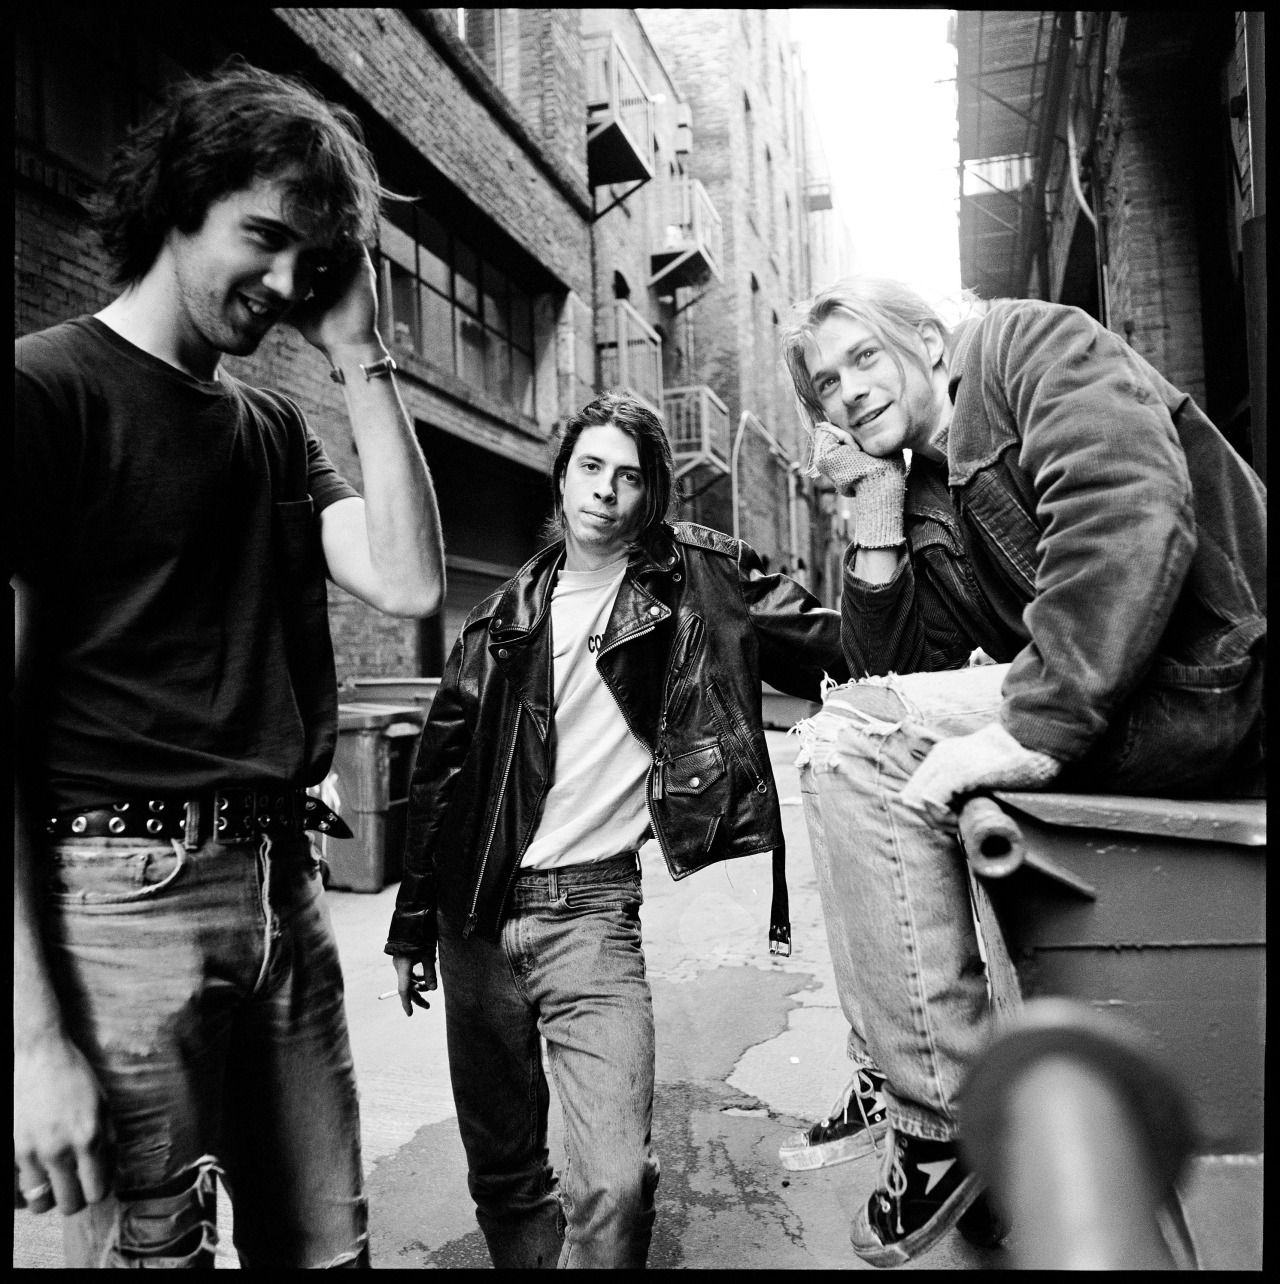 Nirvana, DGC Records, Seattle, WA, US. 1991. Photograph by Chris Cuffaro